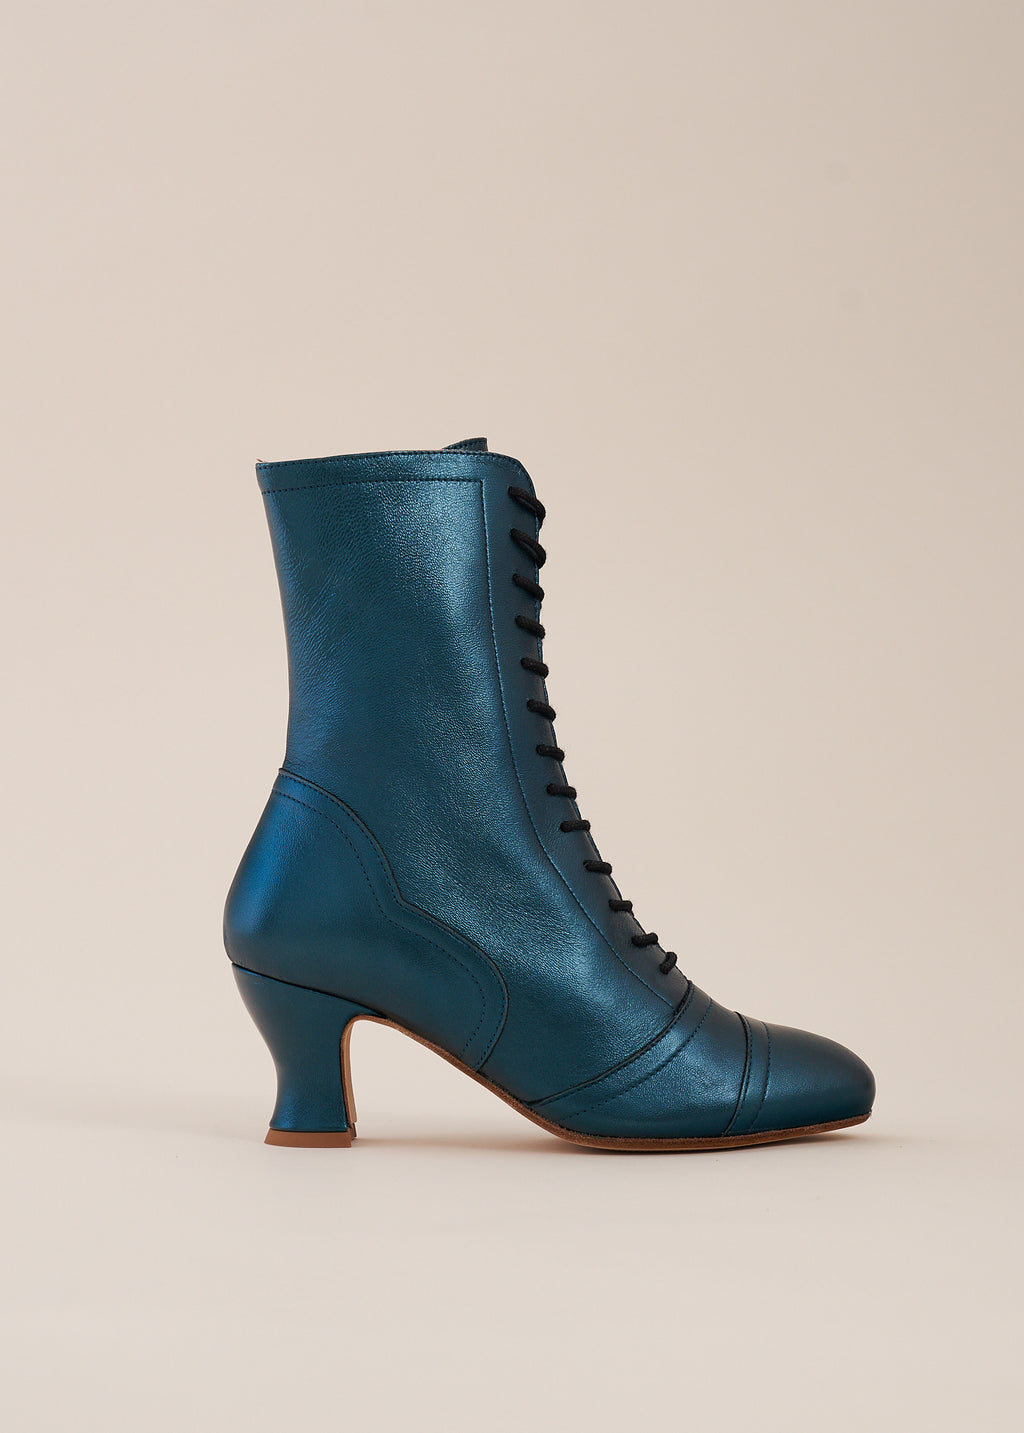 Frida Luxe Teal Metallic Leather Lace up Boots- LAST PAIRS SIZES 39 & 42!